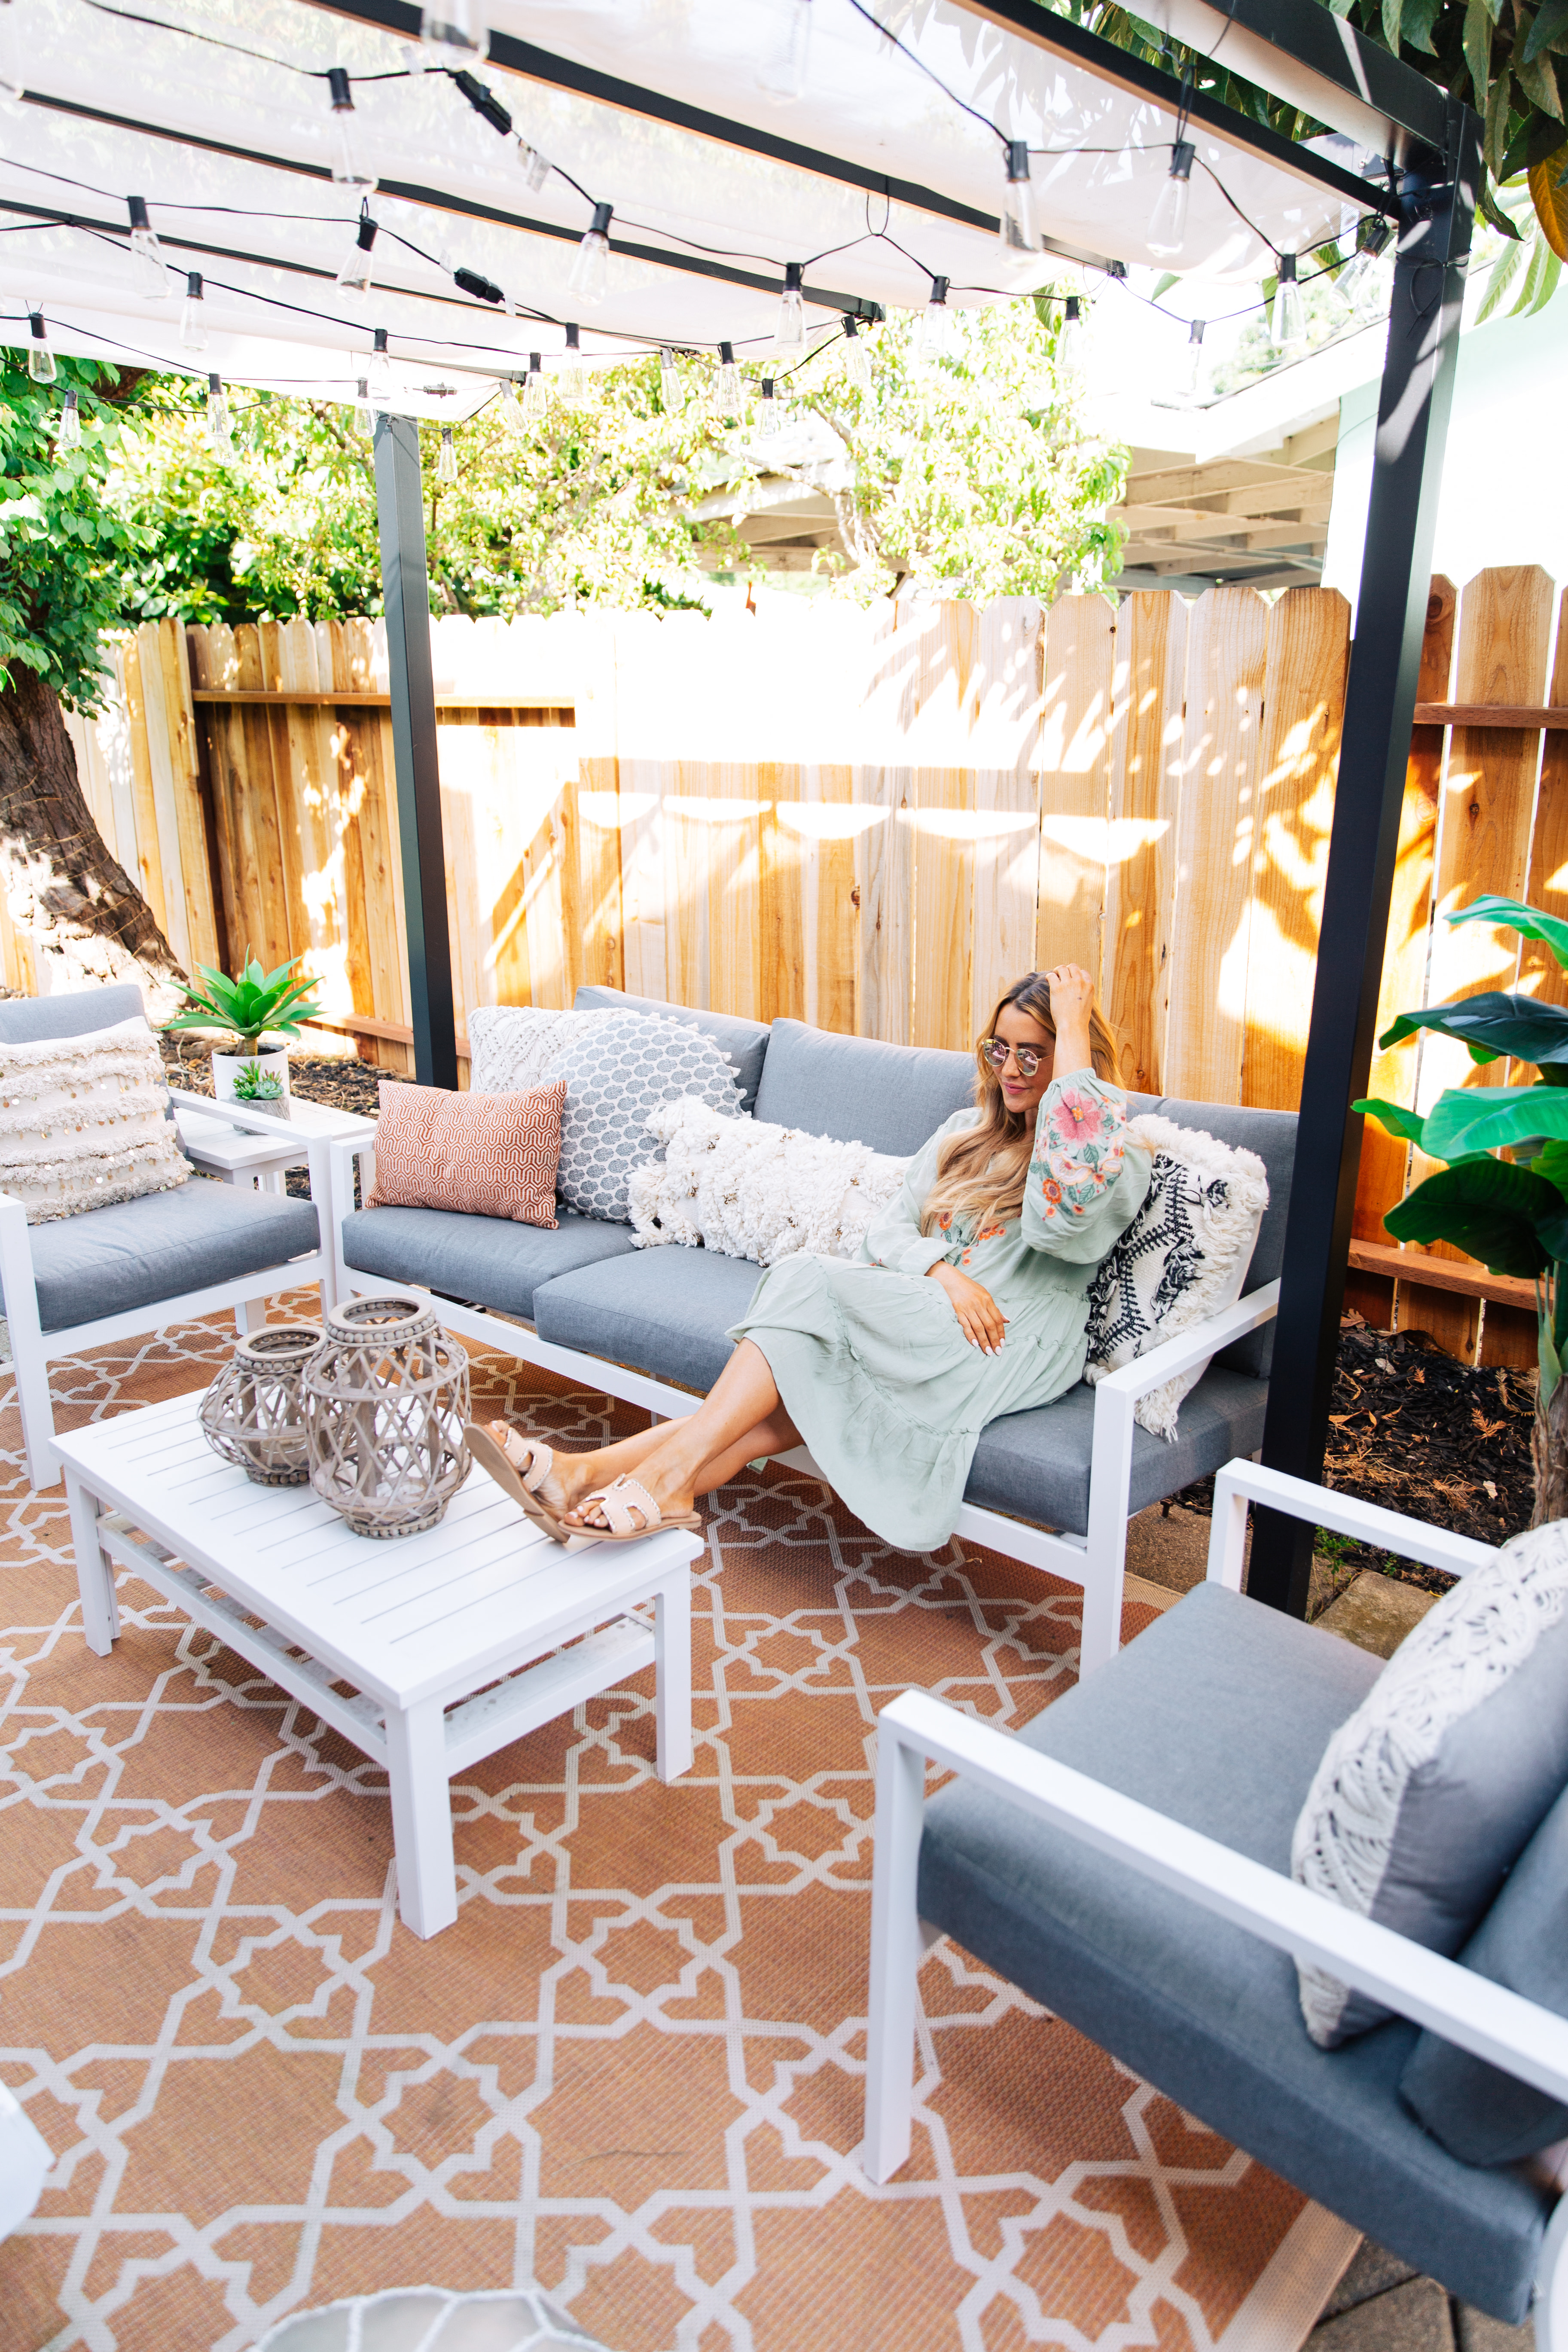 Outdoor Patio Ideas For The Summer With Yard Bird For